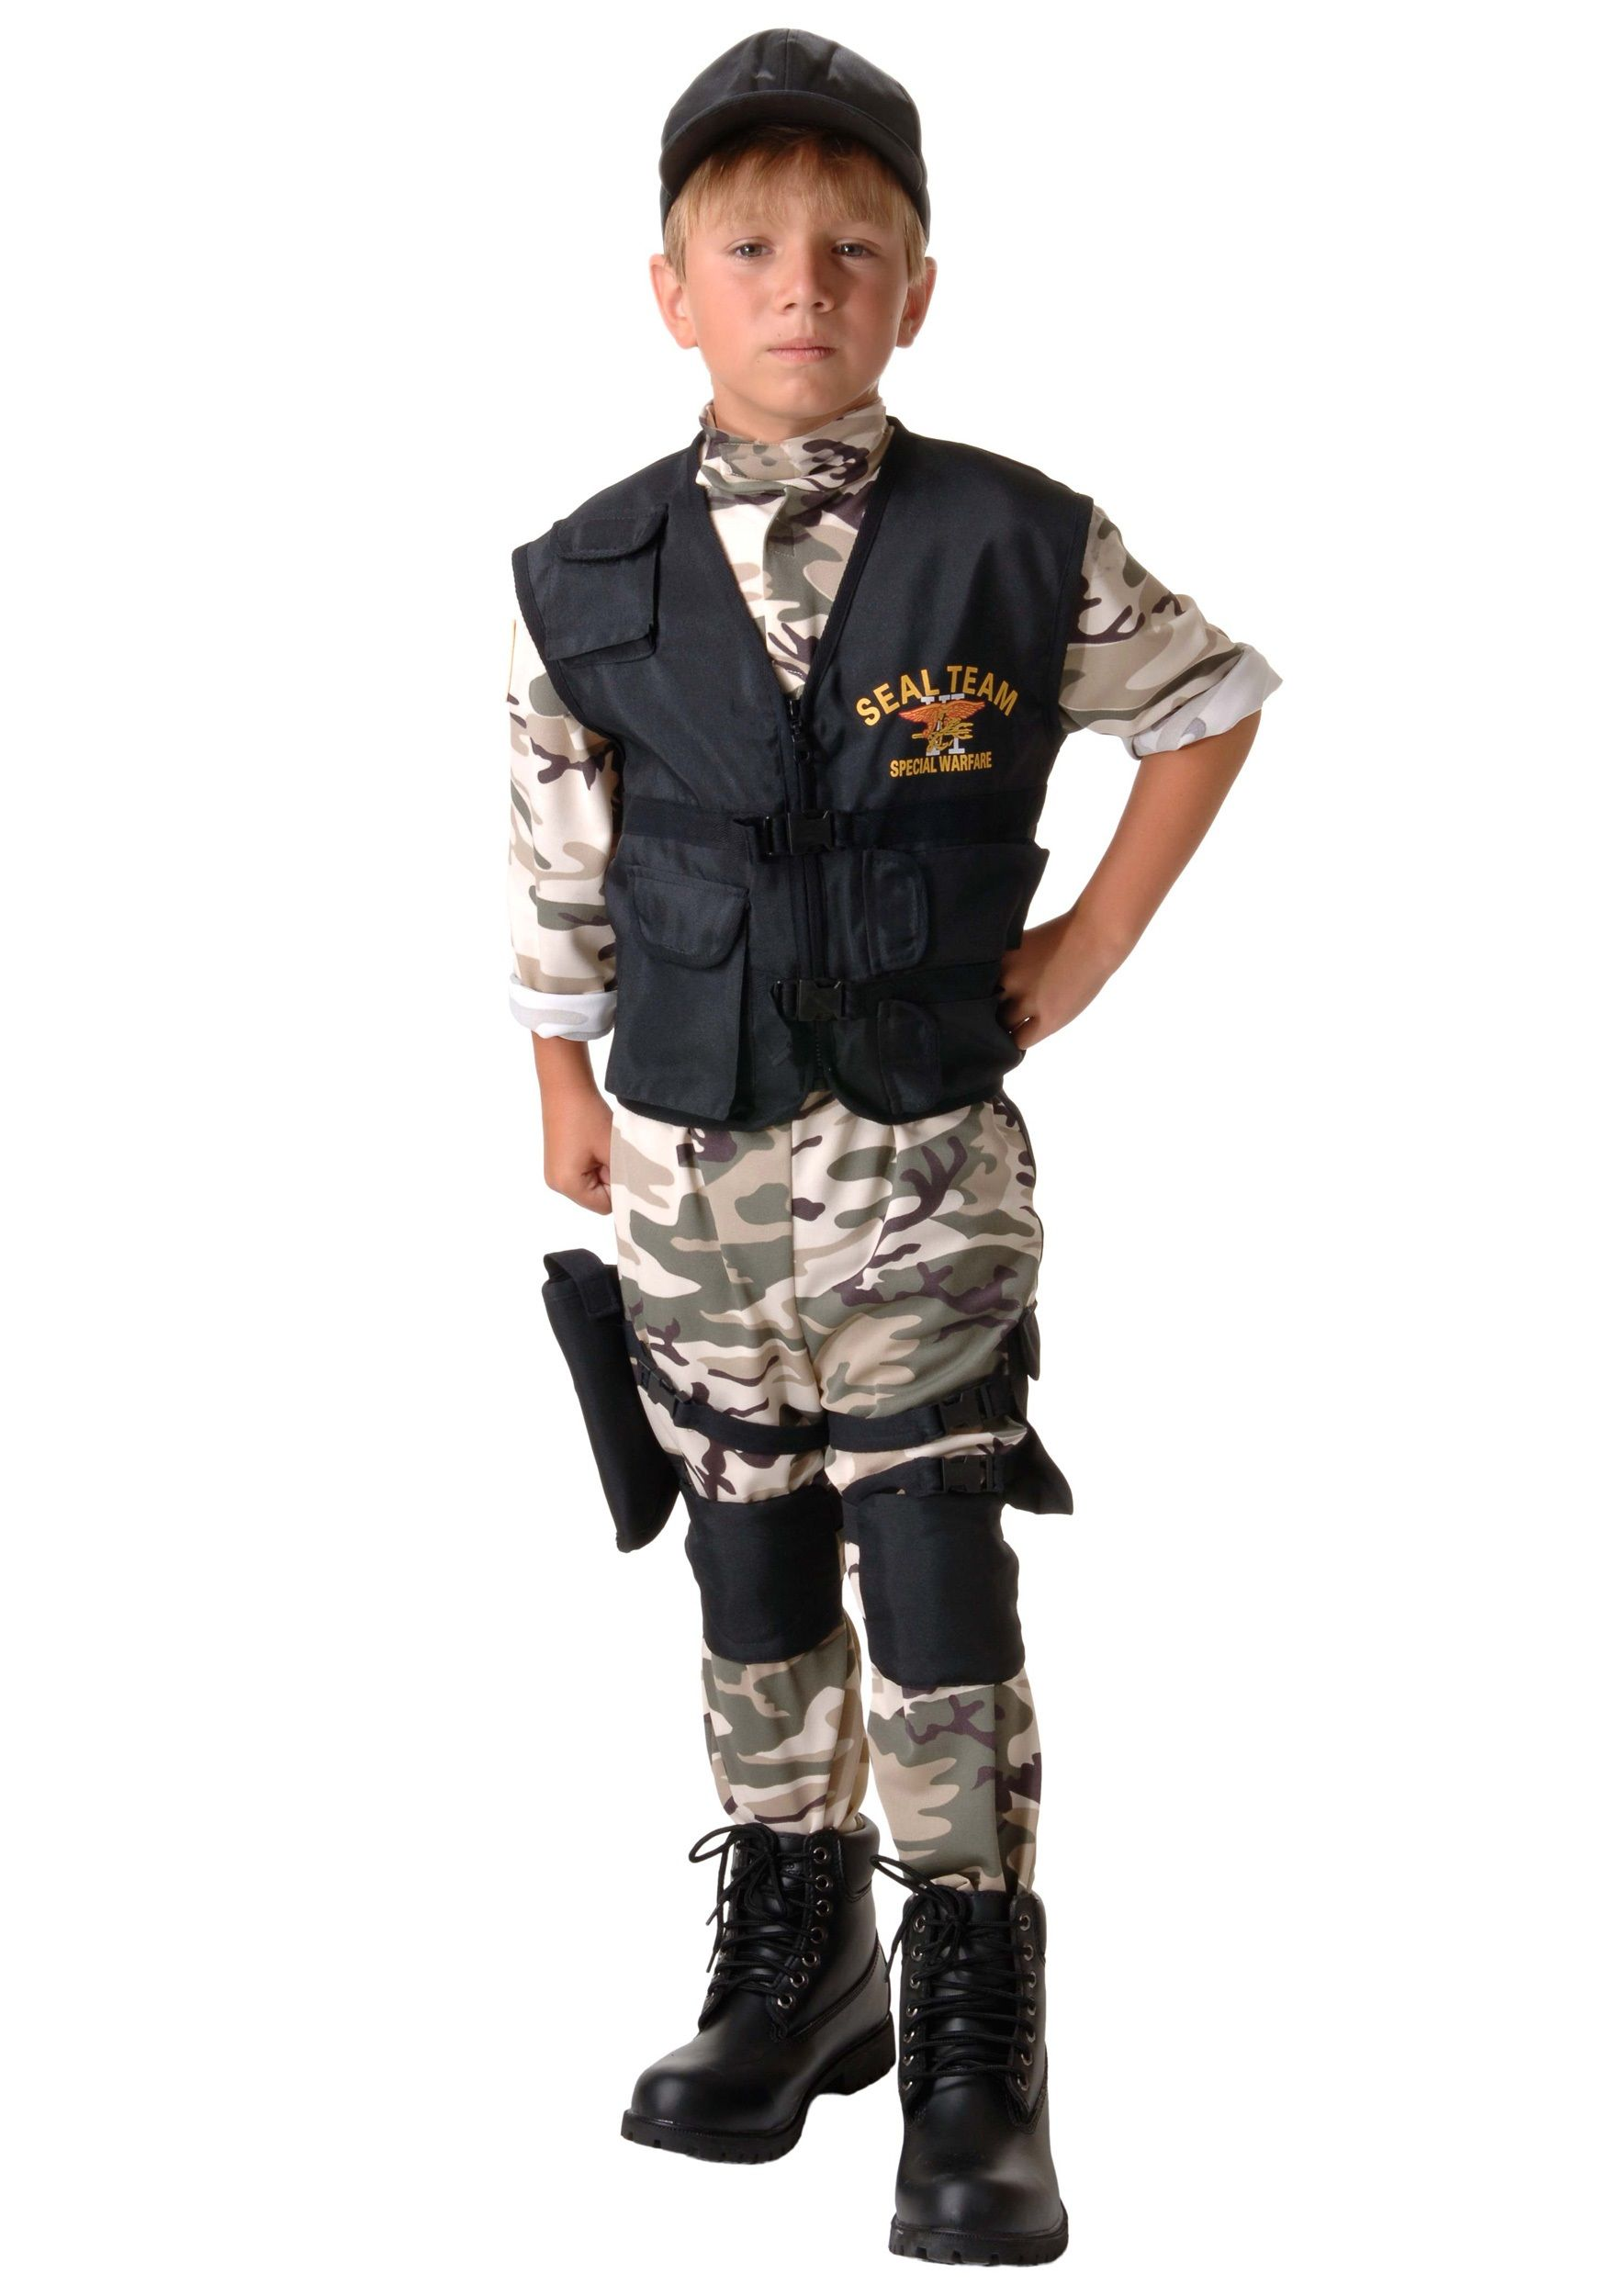 army costumes for kids | ... Costumes Ideas Career Costumes Army Costumes Kids SEAL Team Costume  sc 1 st  Pinterest & army costumes for kids | ... Costumes Ideas Career Costumes Army ...